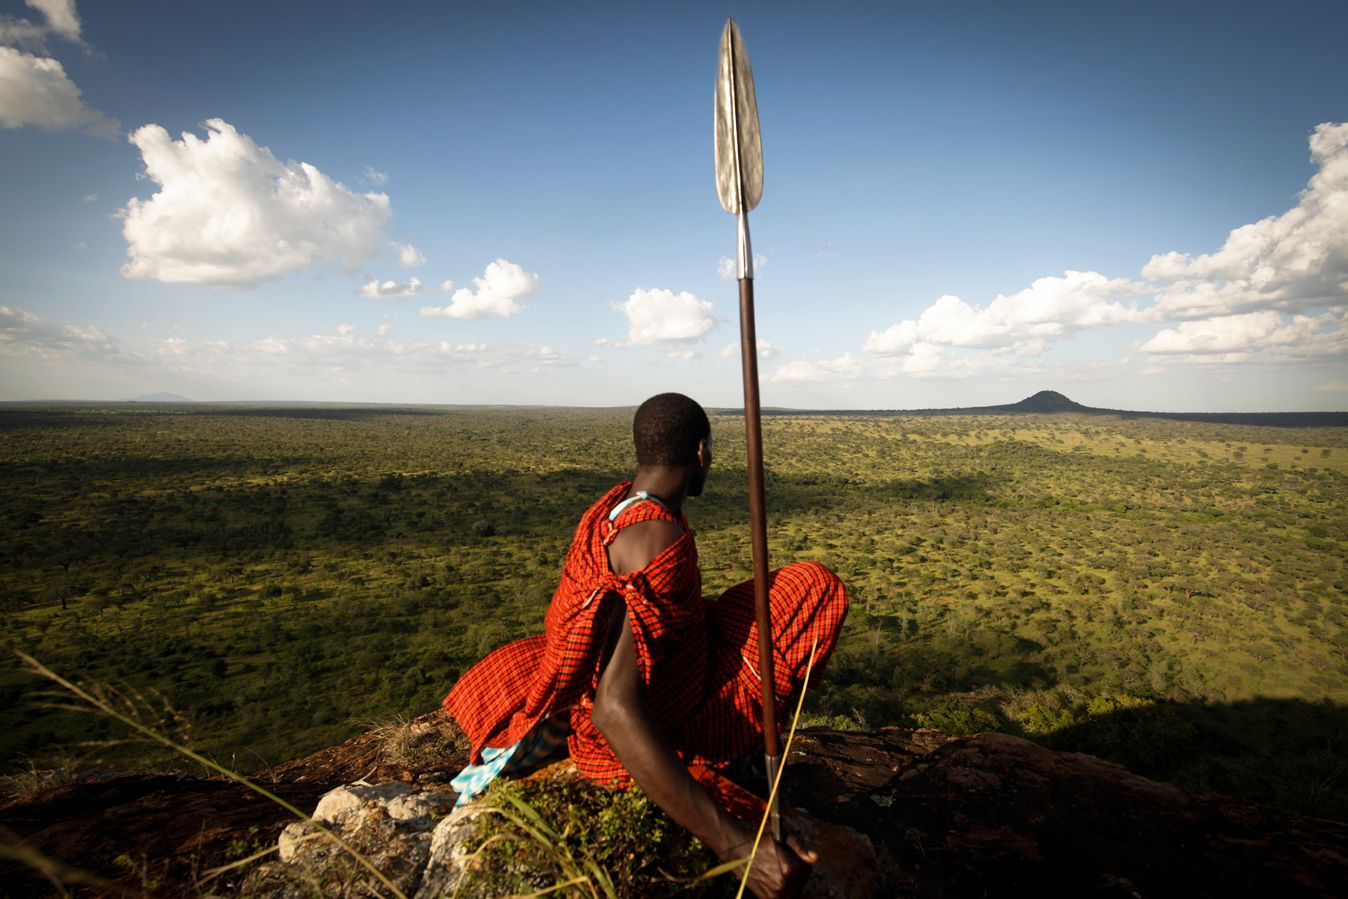 The Maasai Steppe in northern Tanzania